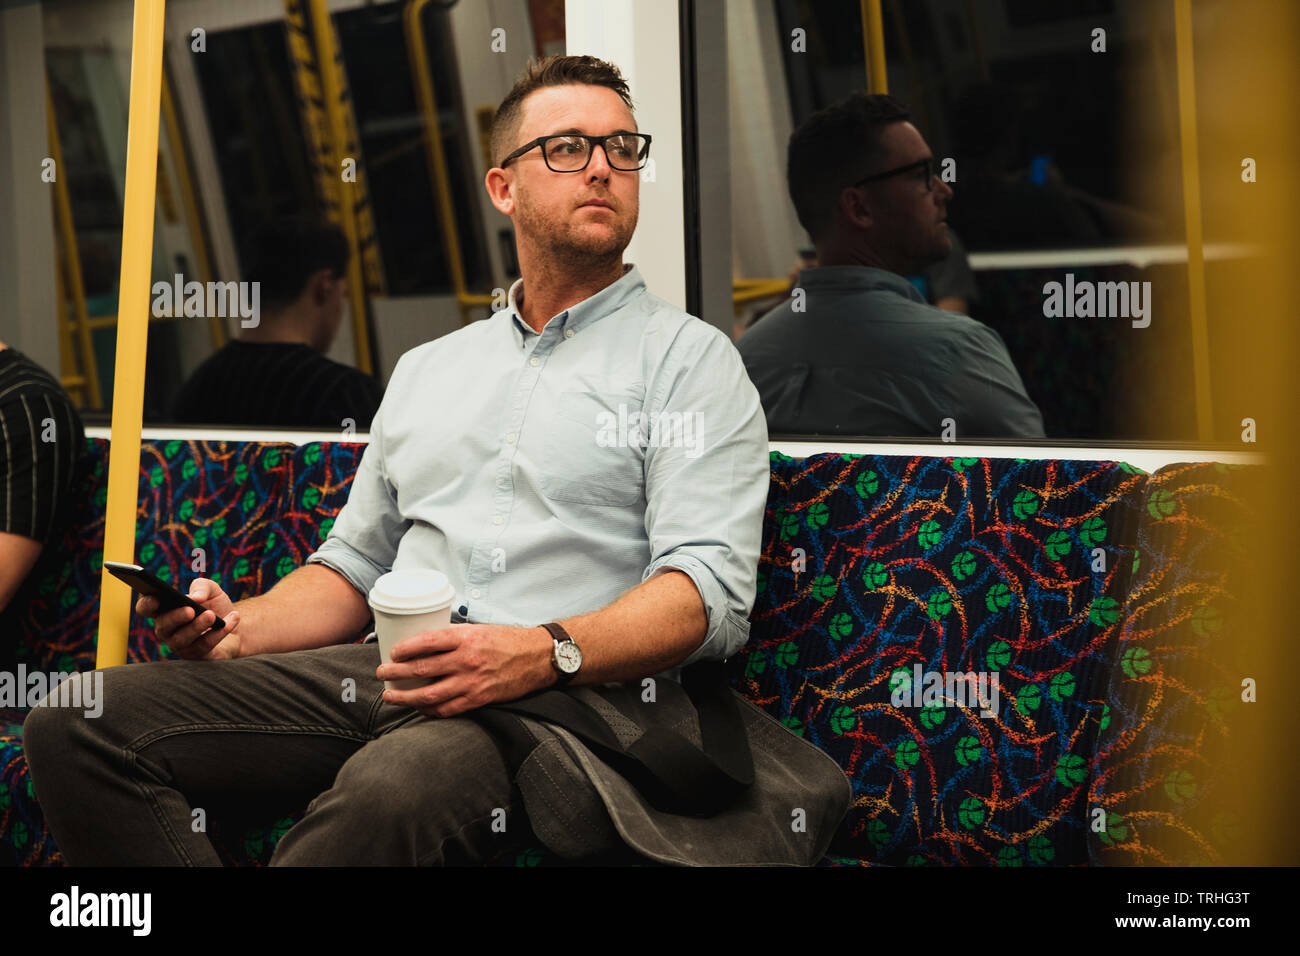 A front-view shot of a mid-adult businessman sitting on a train commuting to work in Perth, Australia. - Stock Image